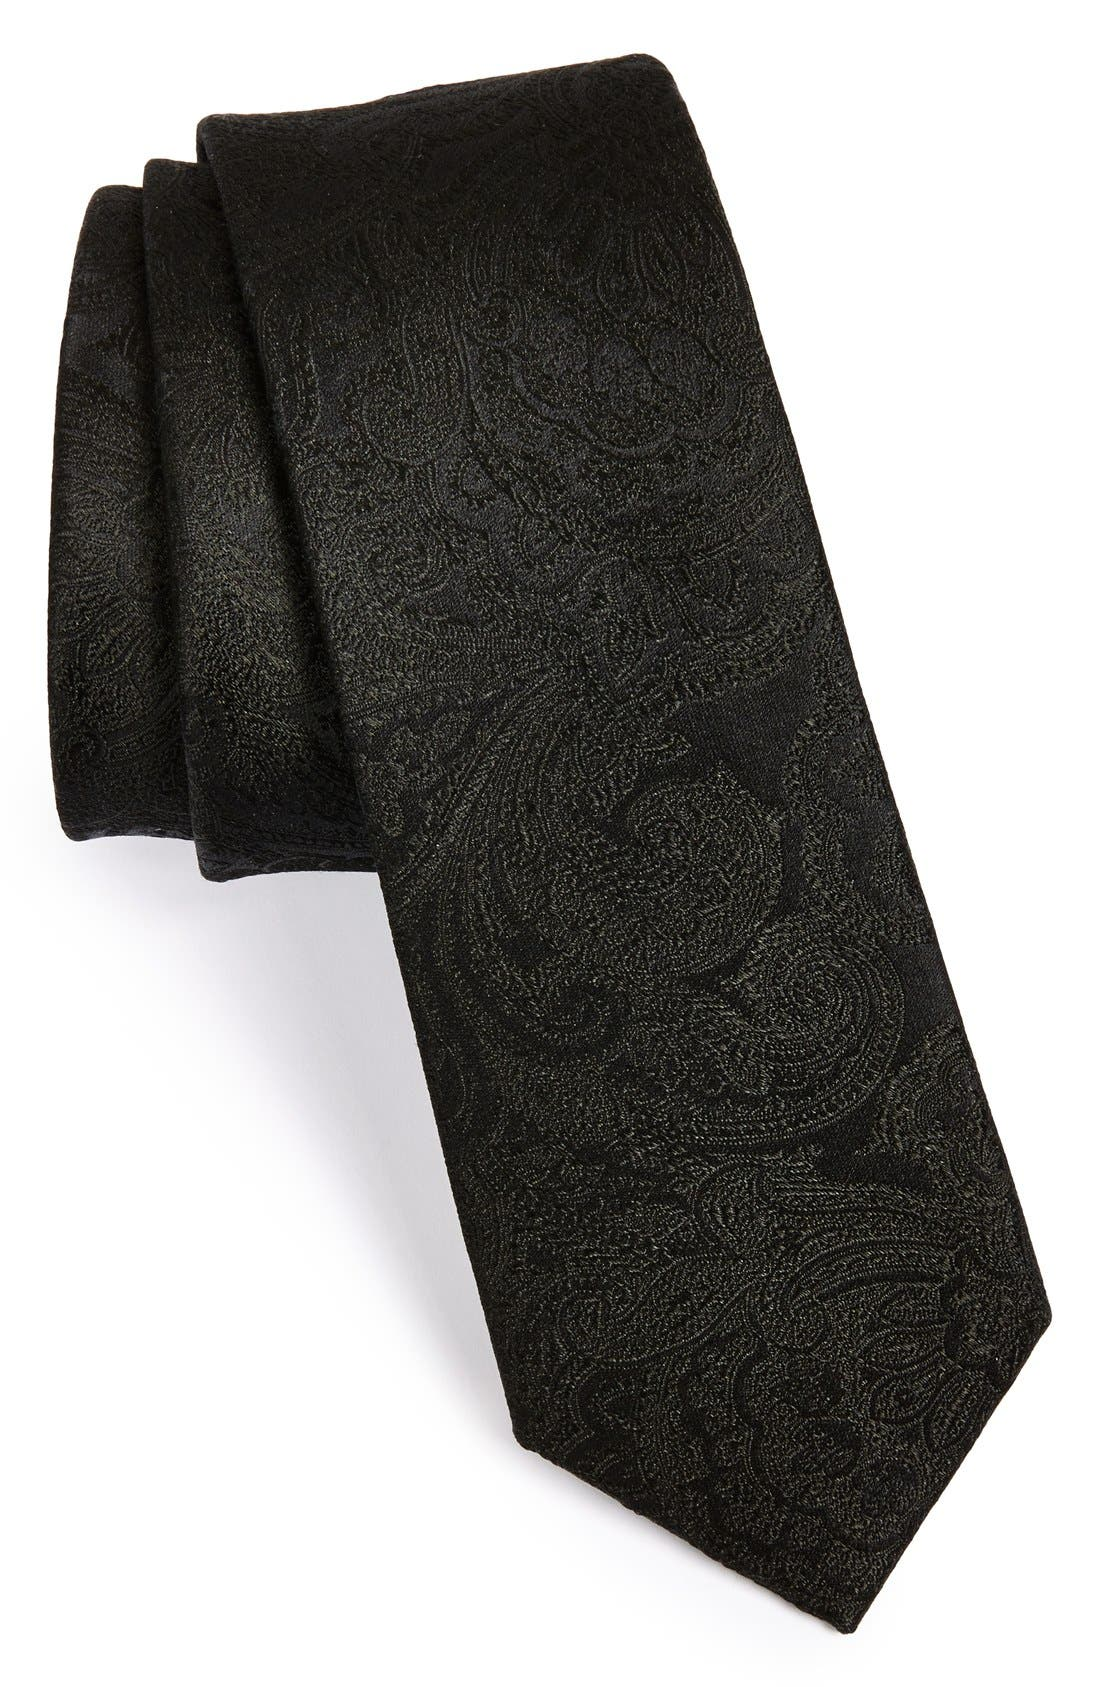 Main Image - The Tie Bar Silk Paisley Tie (Online Only)